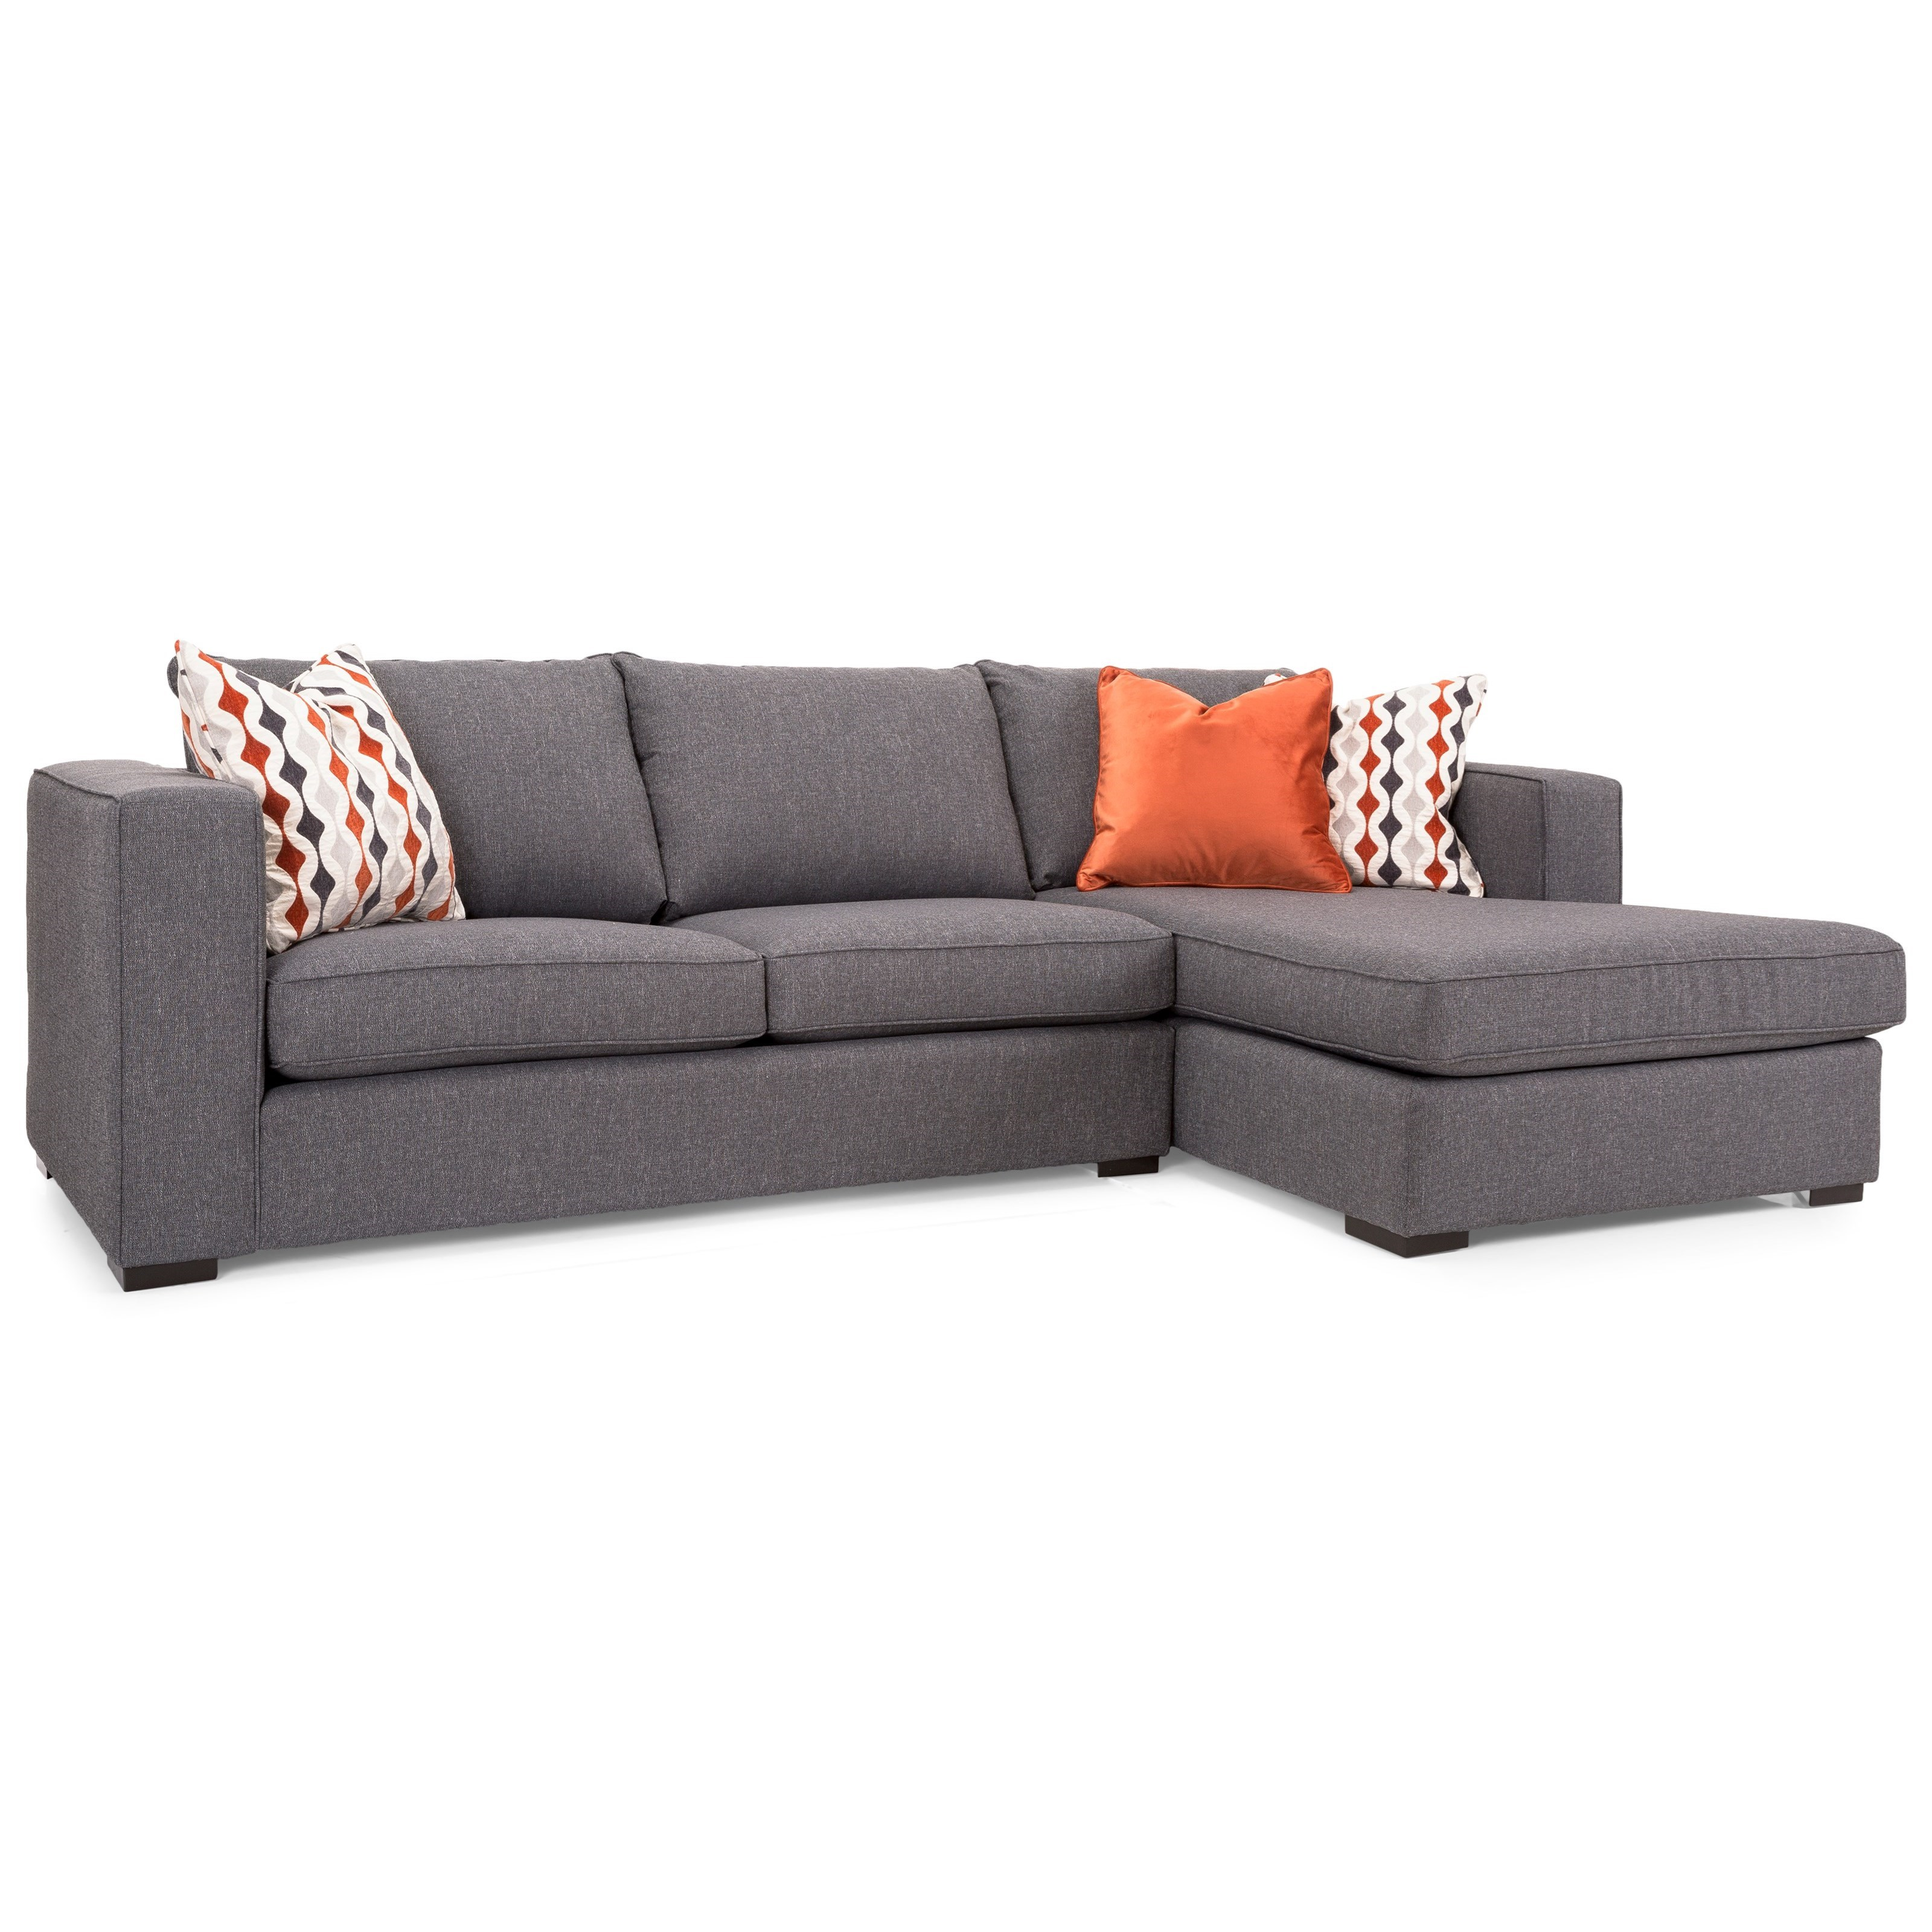 2900 Sofa with Chaise by Decor-Rest at Reid's Furniture